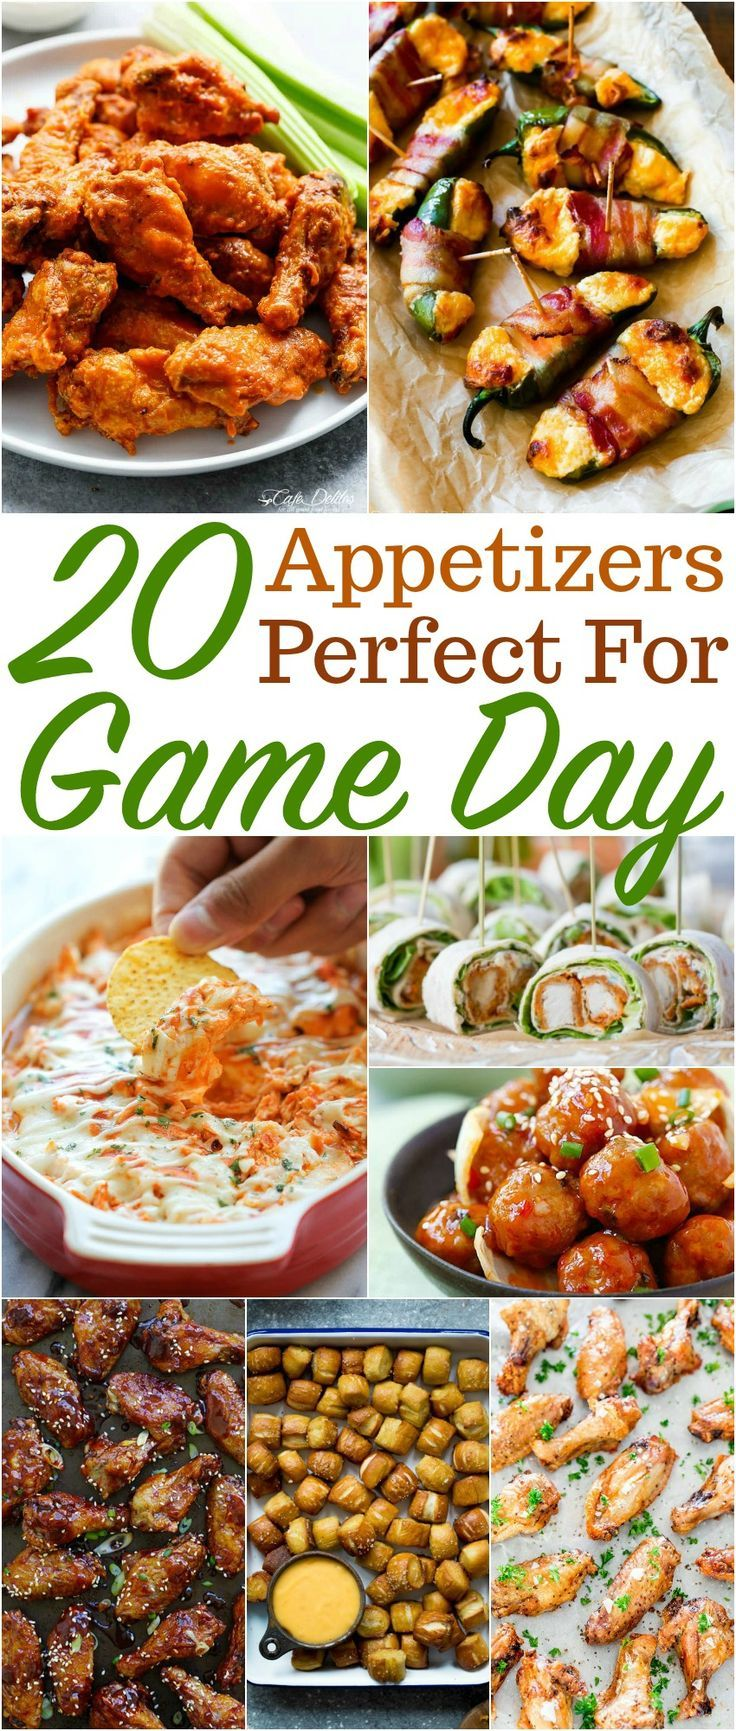 20 Appetizers Perfect For Game Day